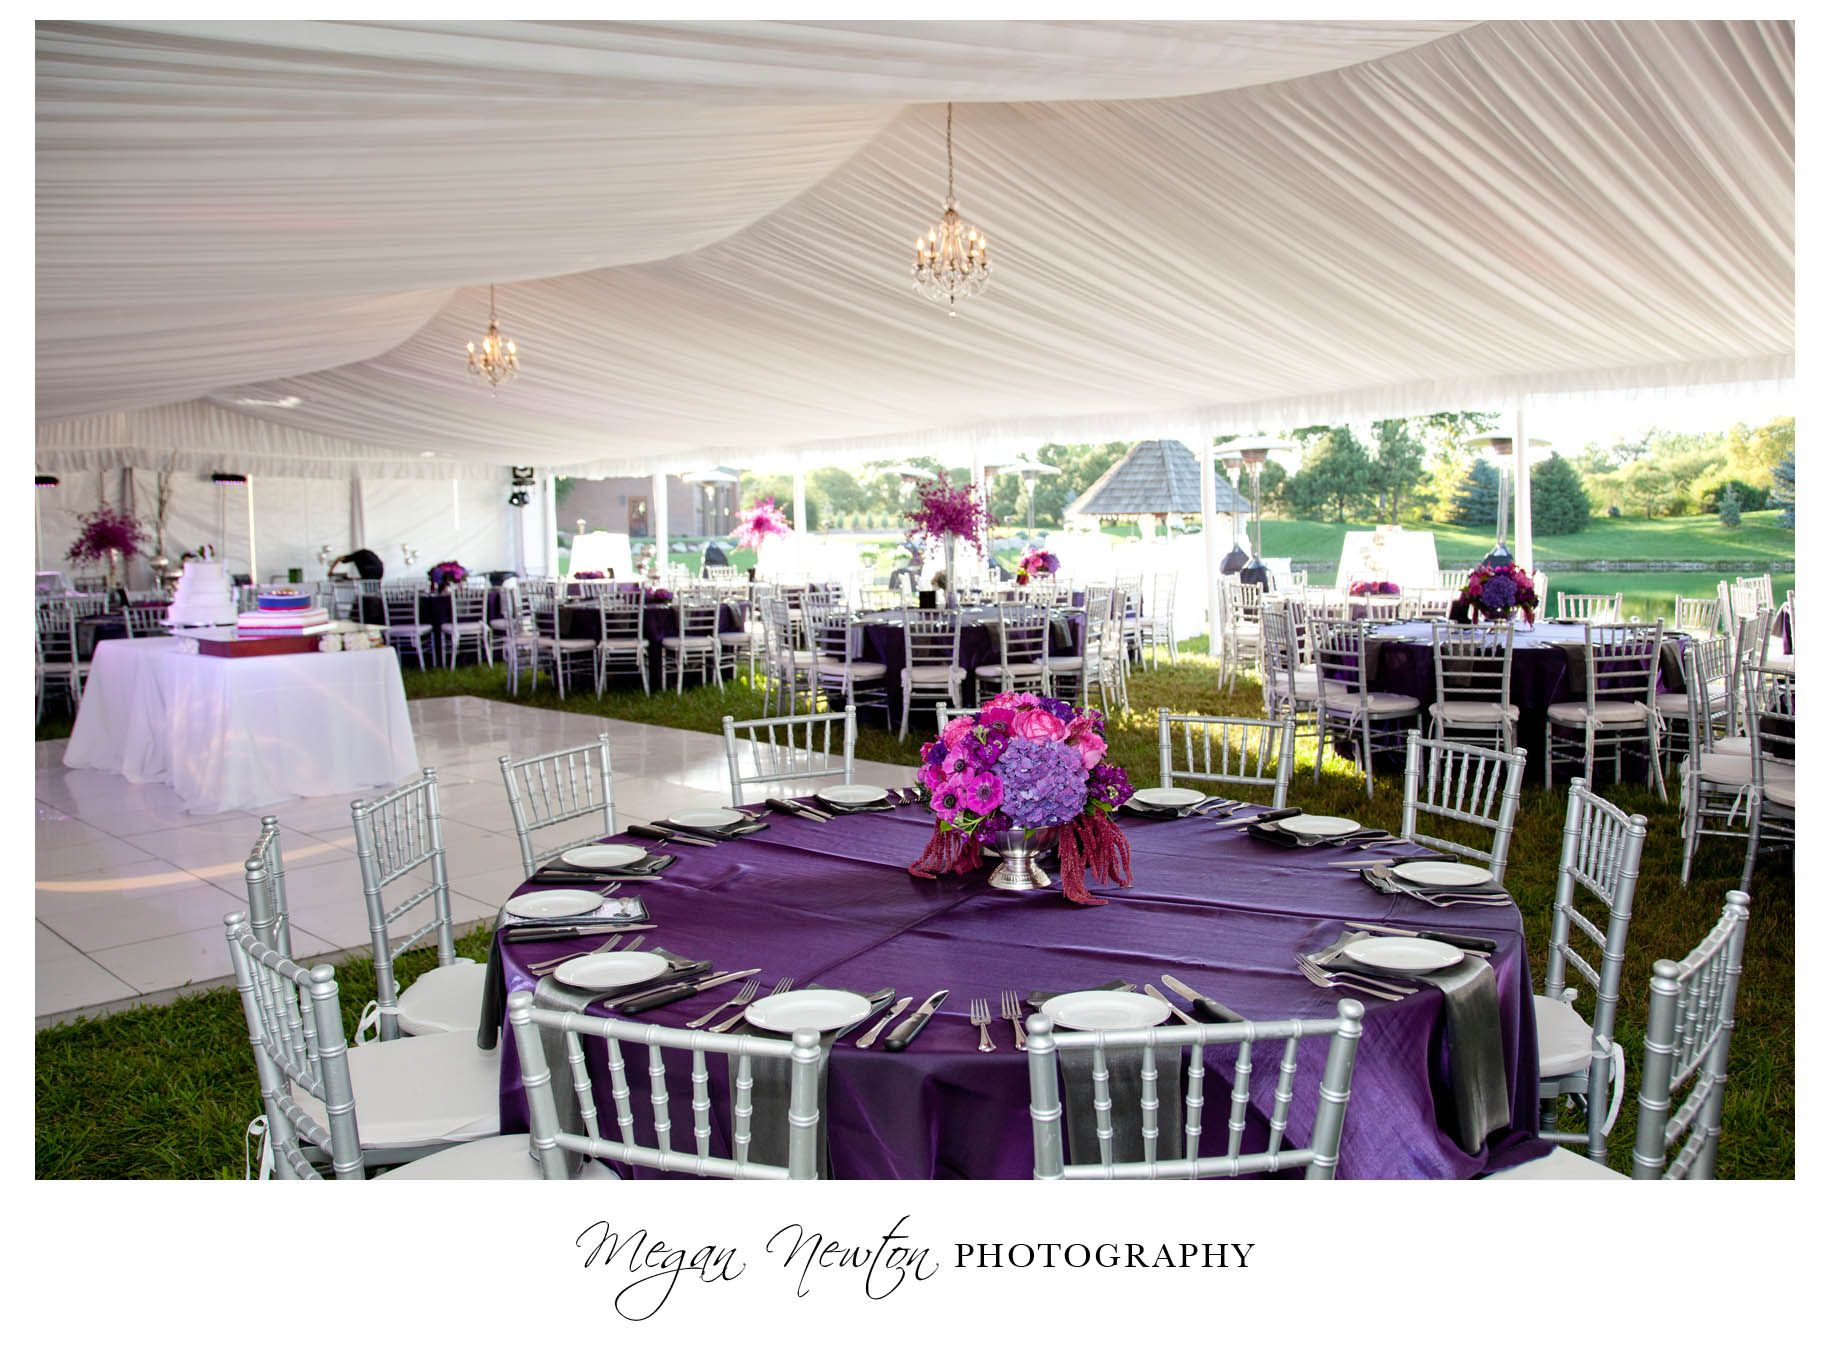 Ceiling Drapery Tent Liners